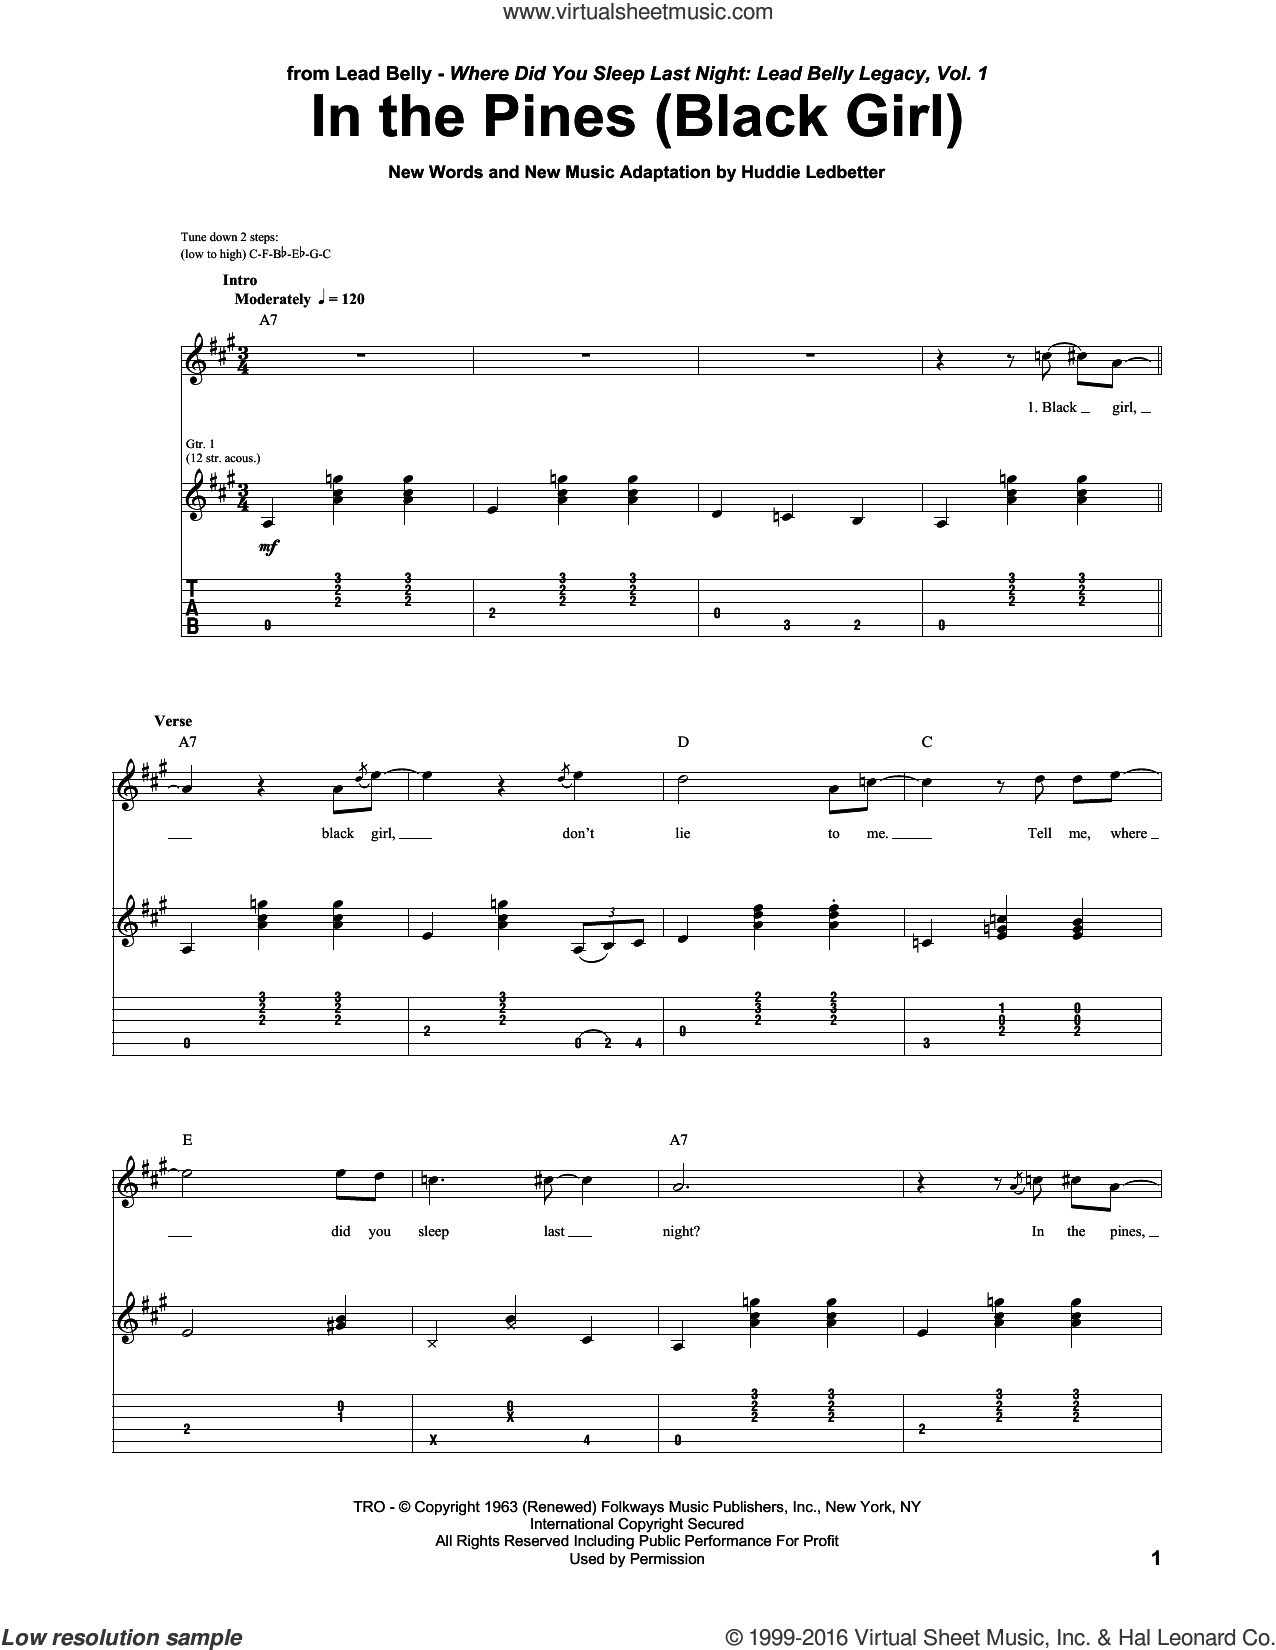 In The Pines (Black Girl) sheet music for guitar (tablature) by Huddie Ledbetter, intermediate skill level